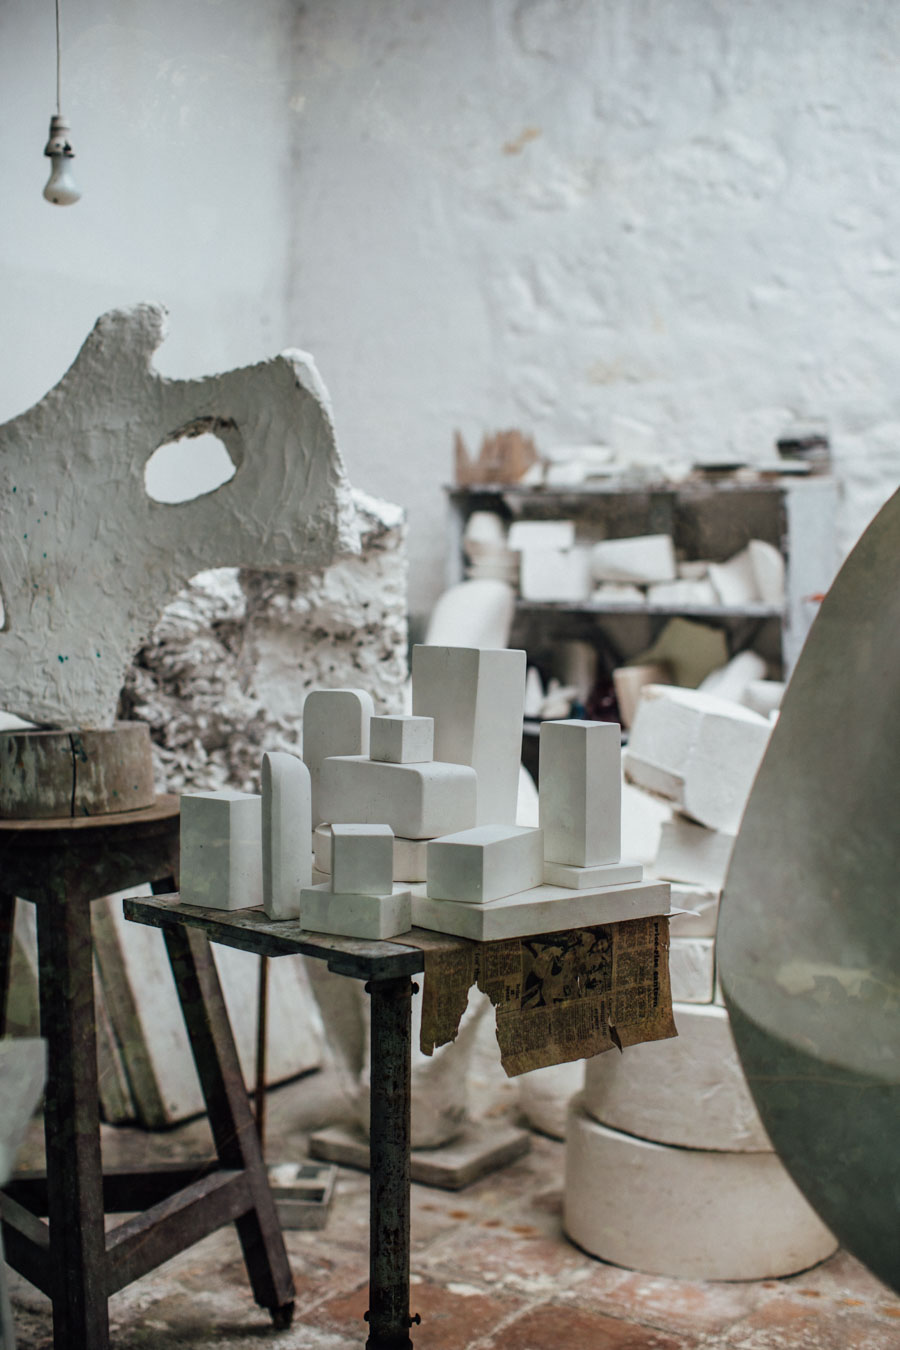 Barbara Hepworth Sculpture Studio